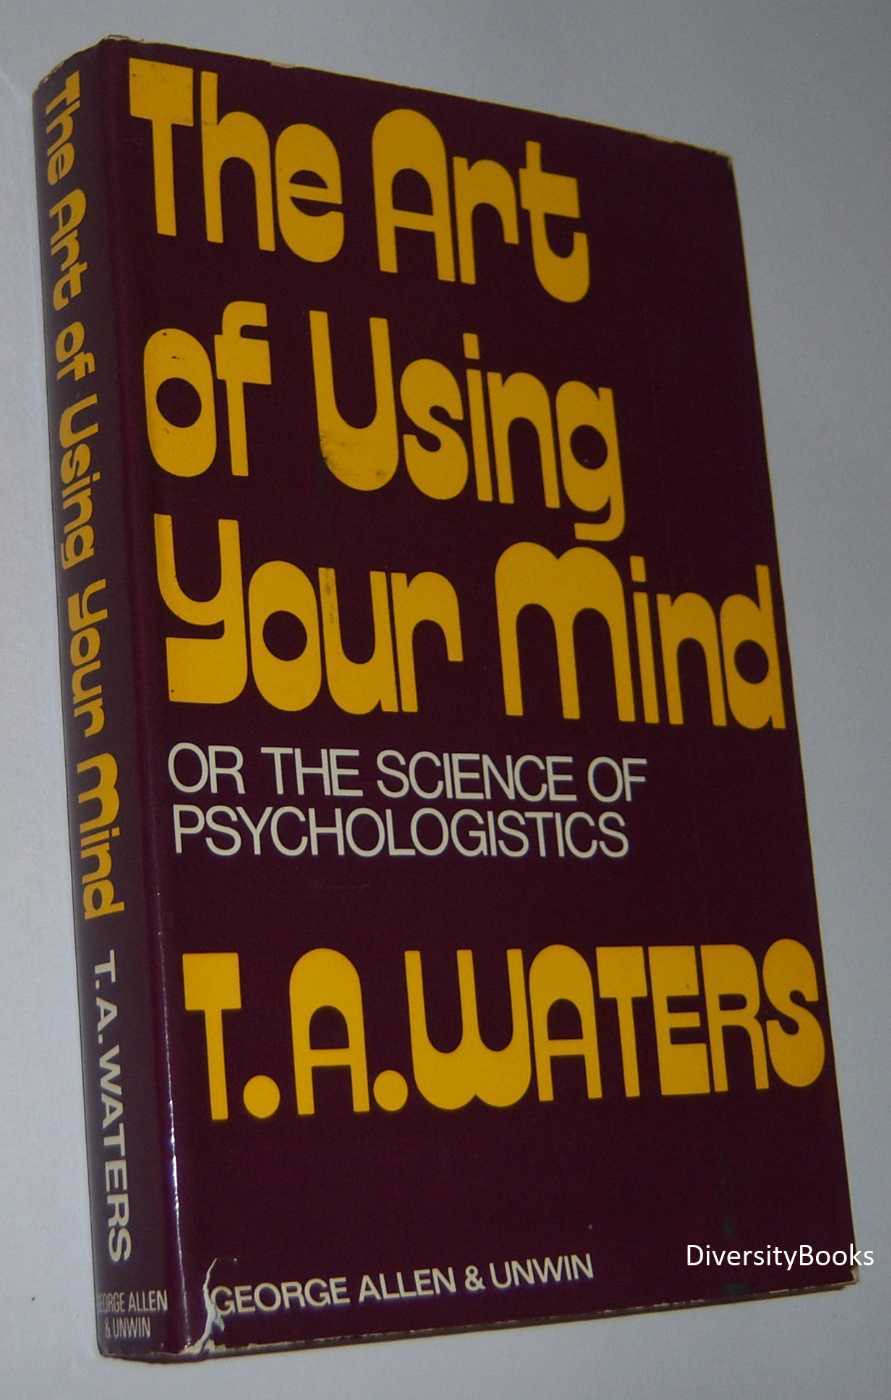 THE ART OF USING YOUR MIND or the Science of Psychologistics